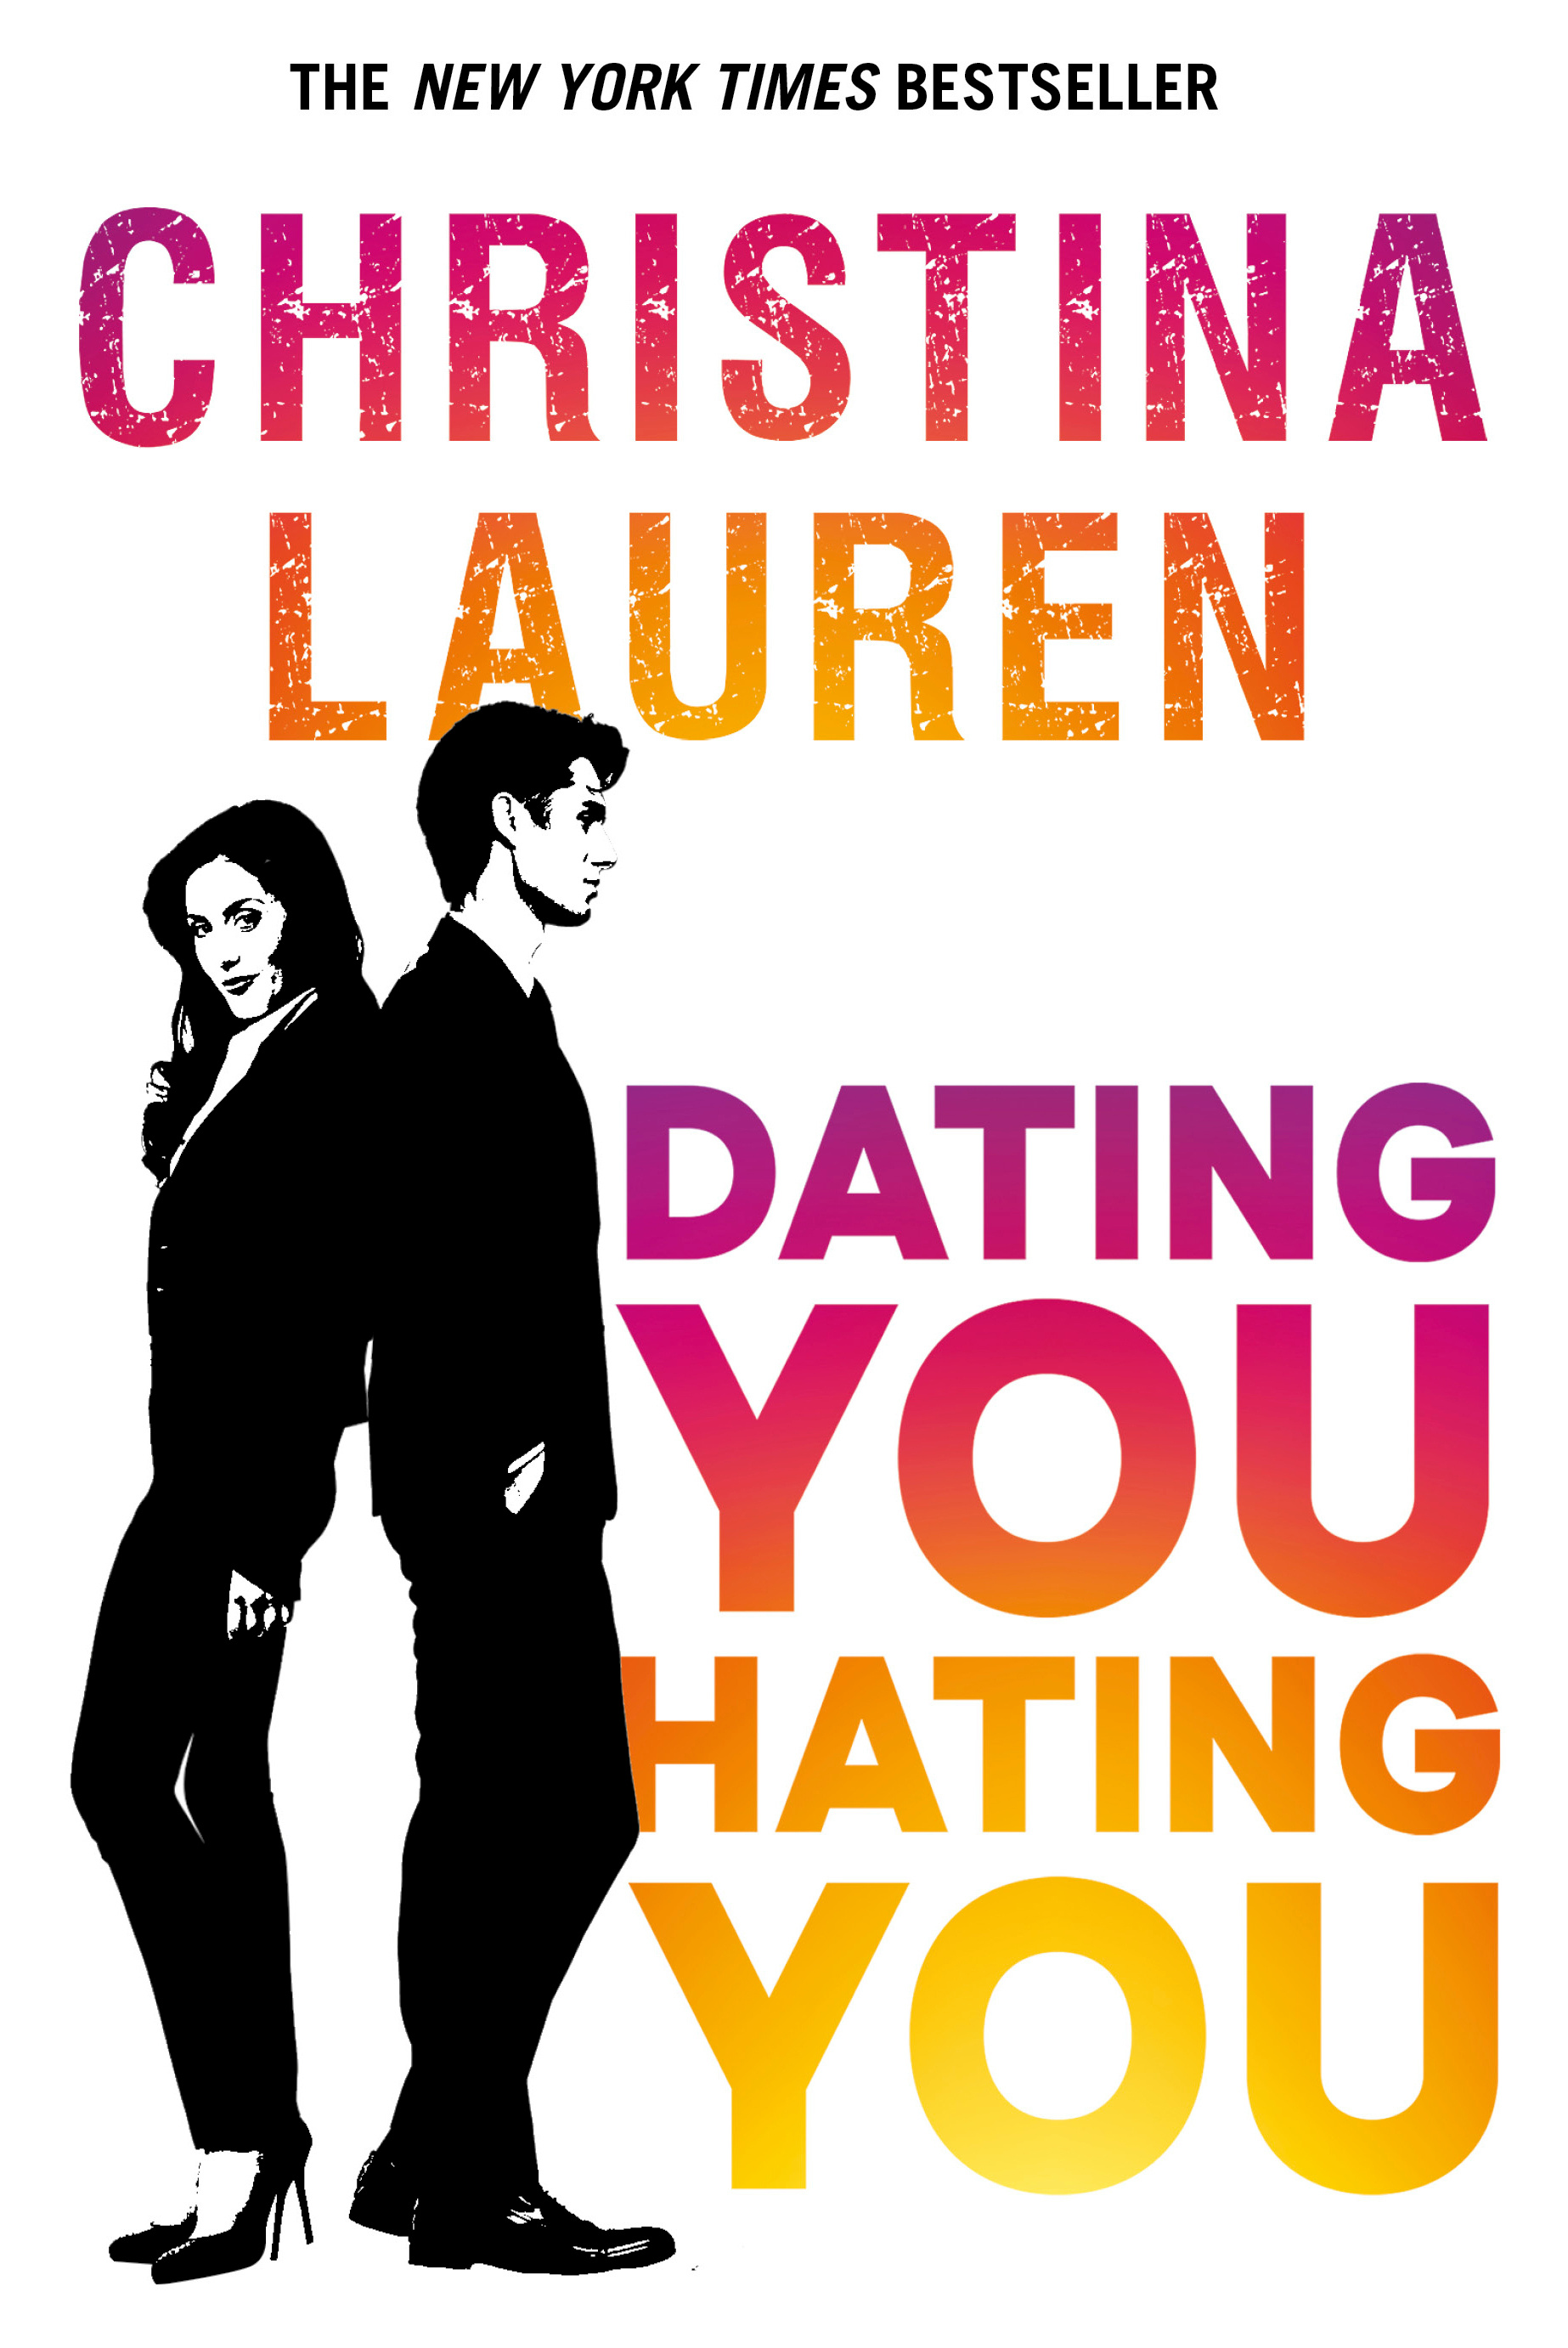 dating-you-hating-you-cover.jpg